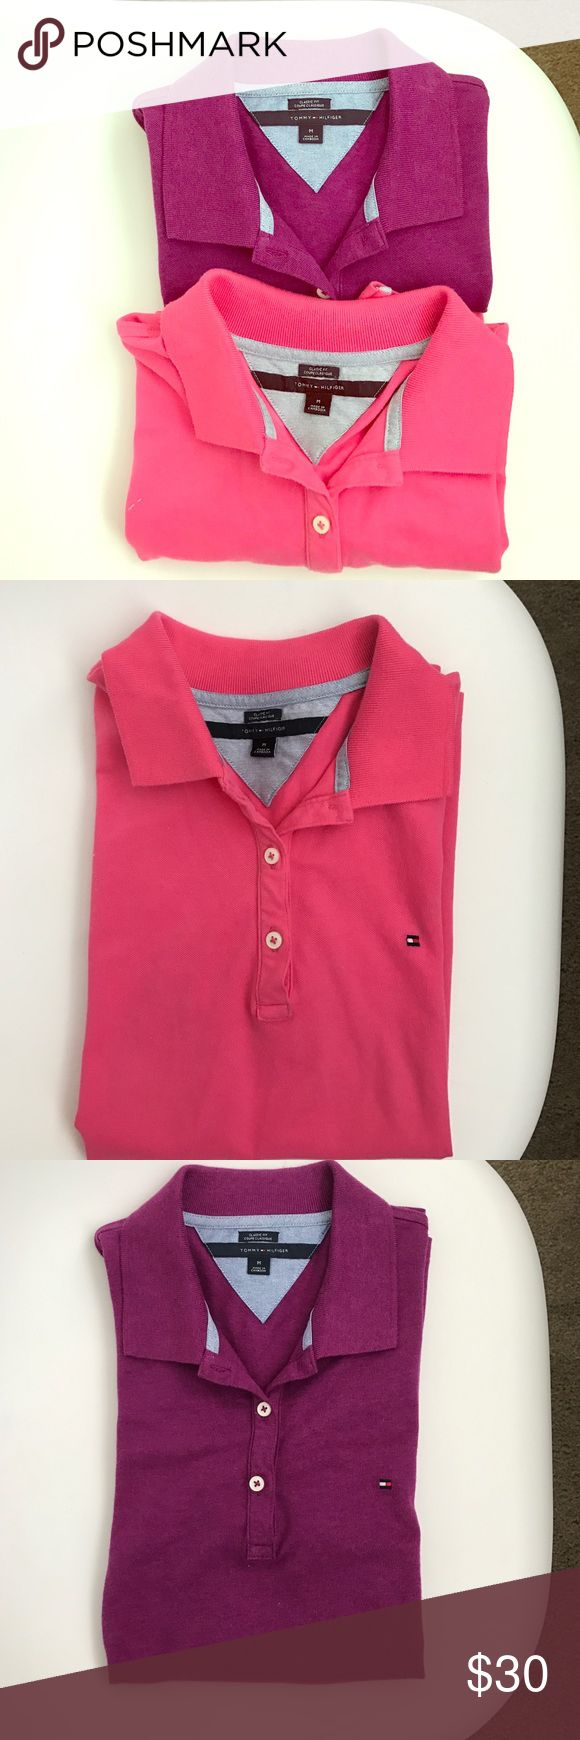 2 like new polo shirts 👚 ! Two polo shirts from Tommy Hilfiger, purple one never used and pink one used once, classic fit, a must have in the wardrobe! :) Tommy Hilfiger Tops Tees - Short Sleeve